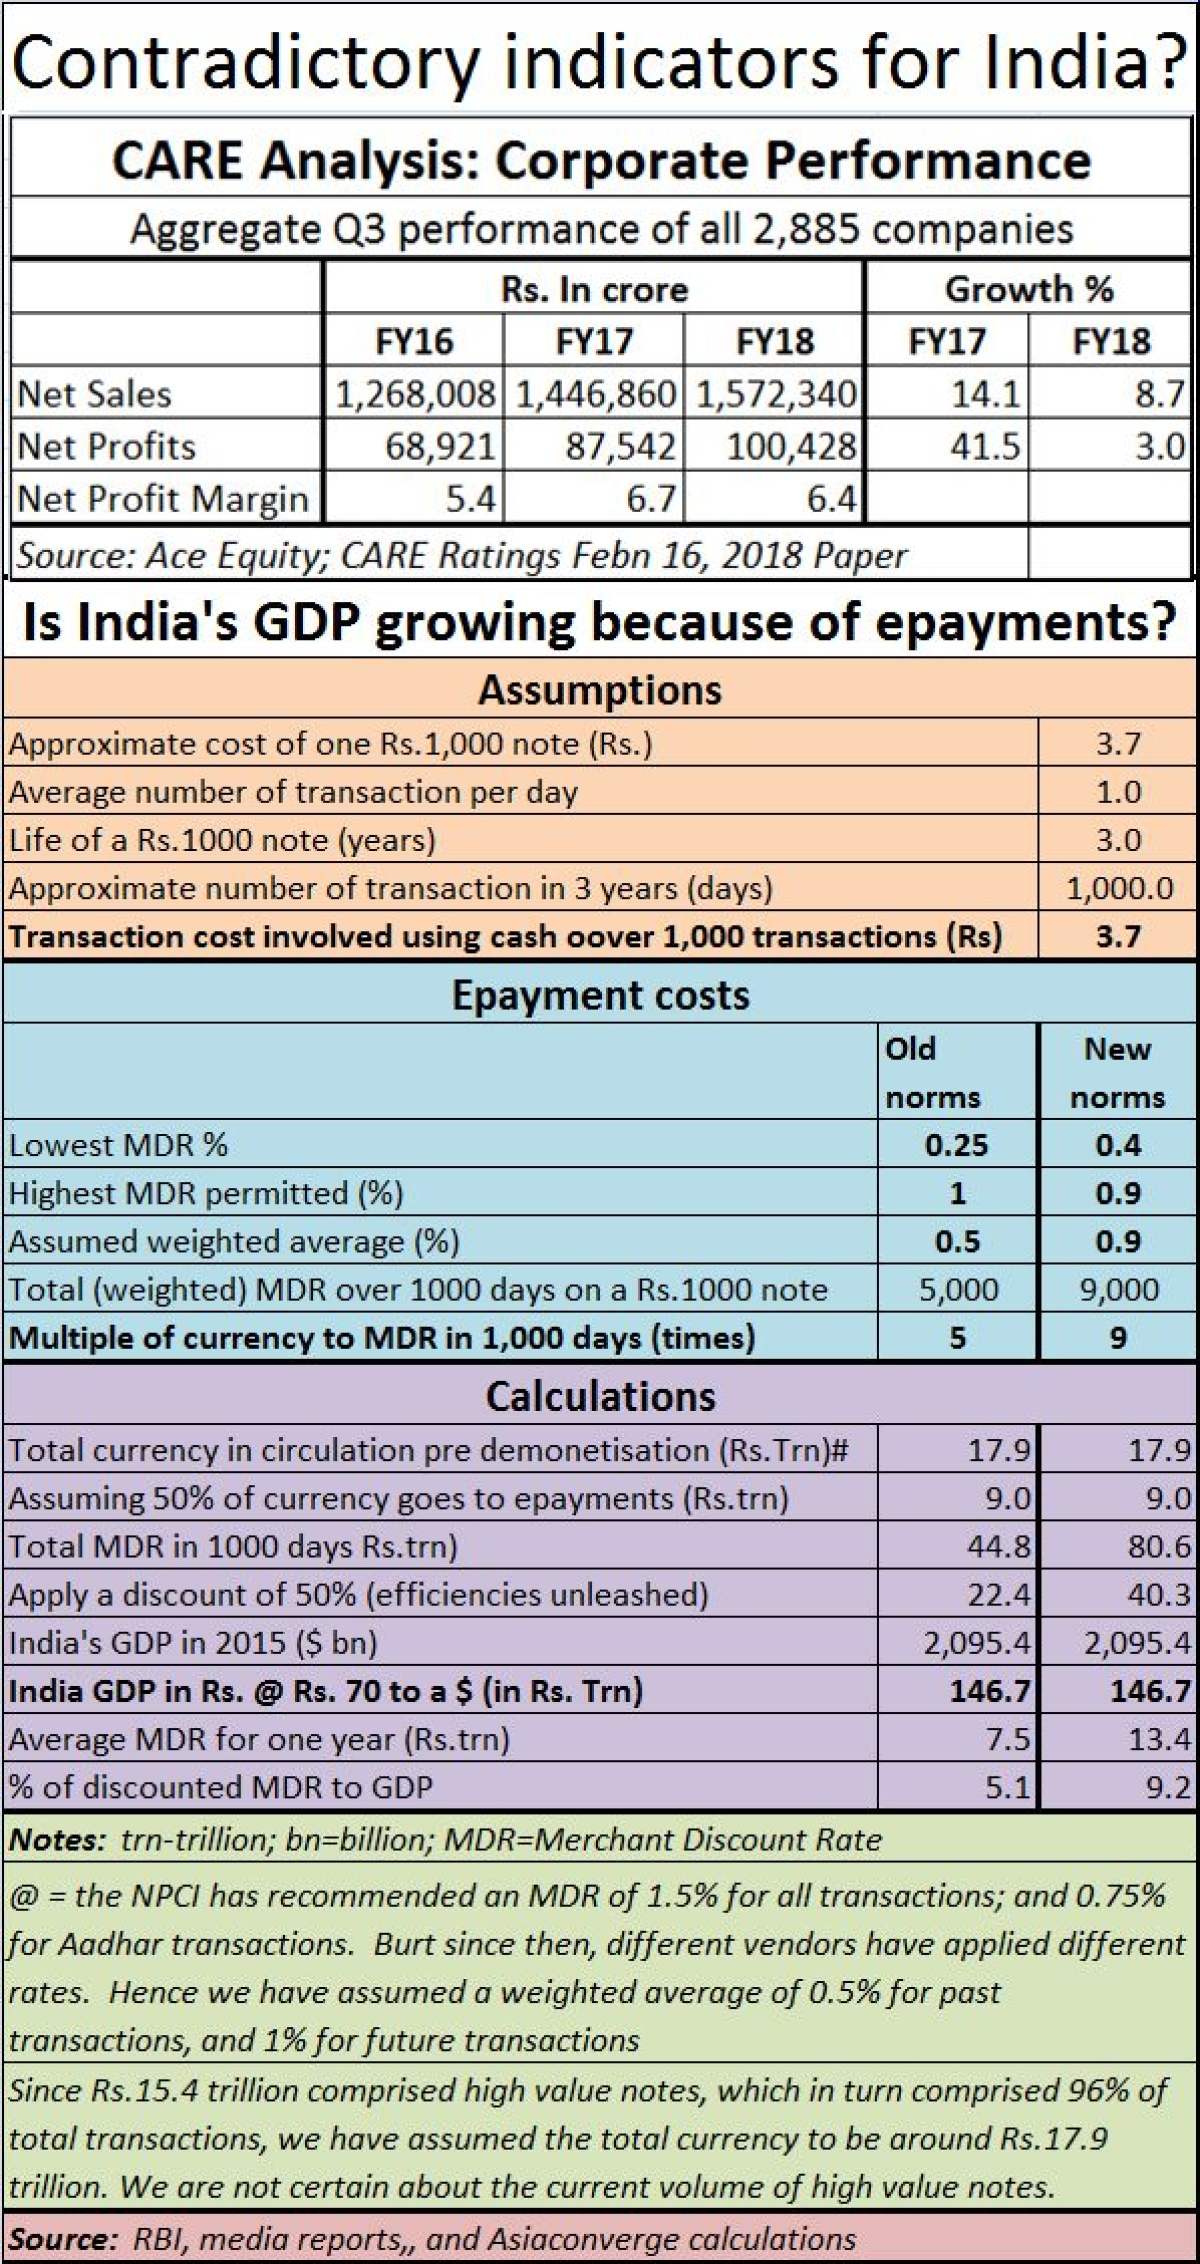 India's GDP growth isn't as good as it seems